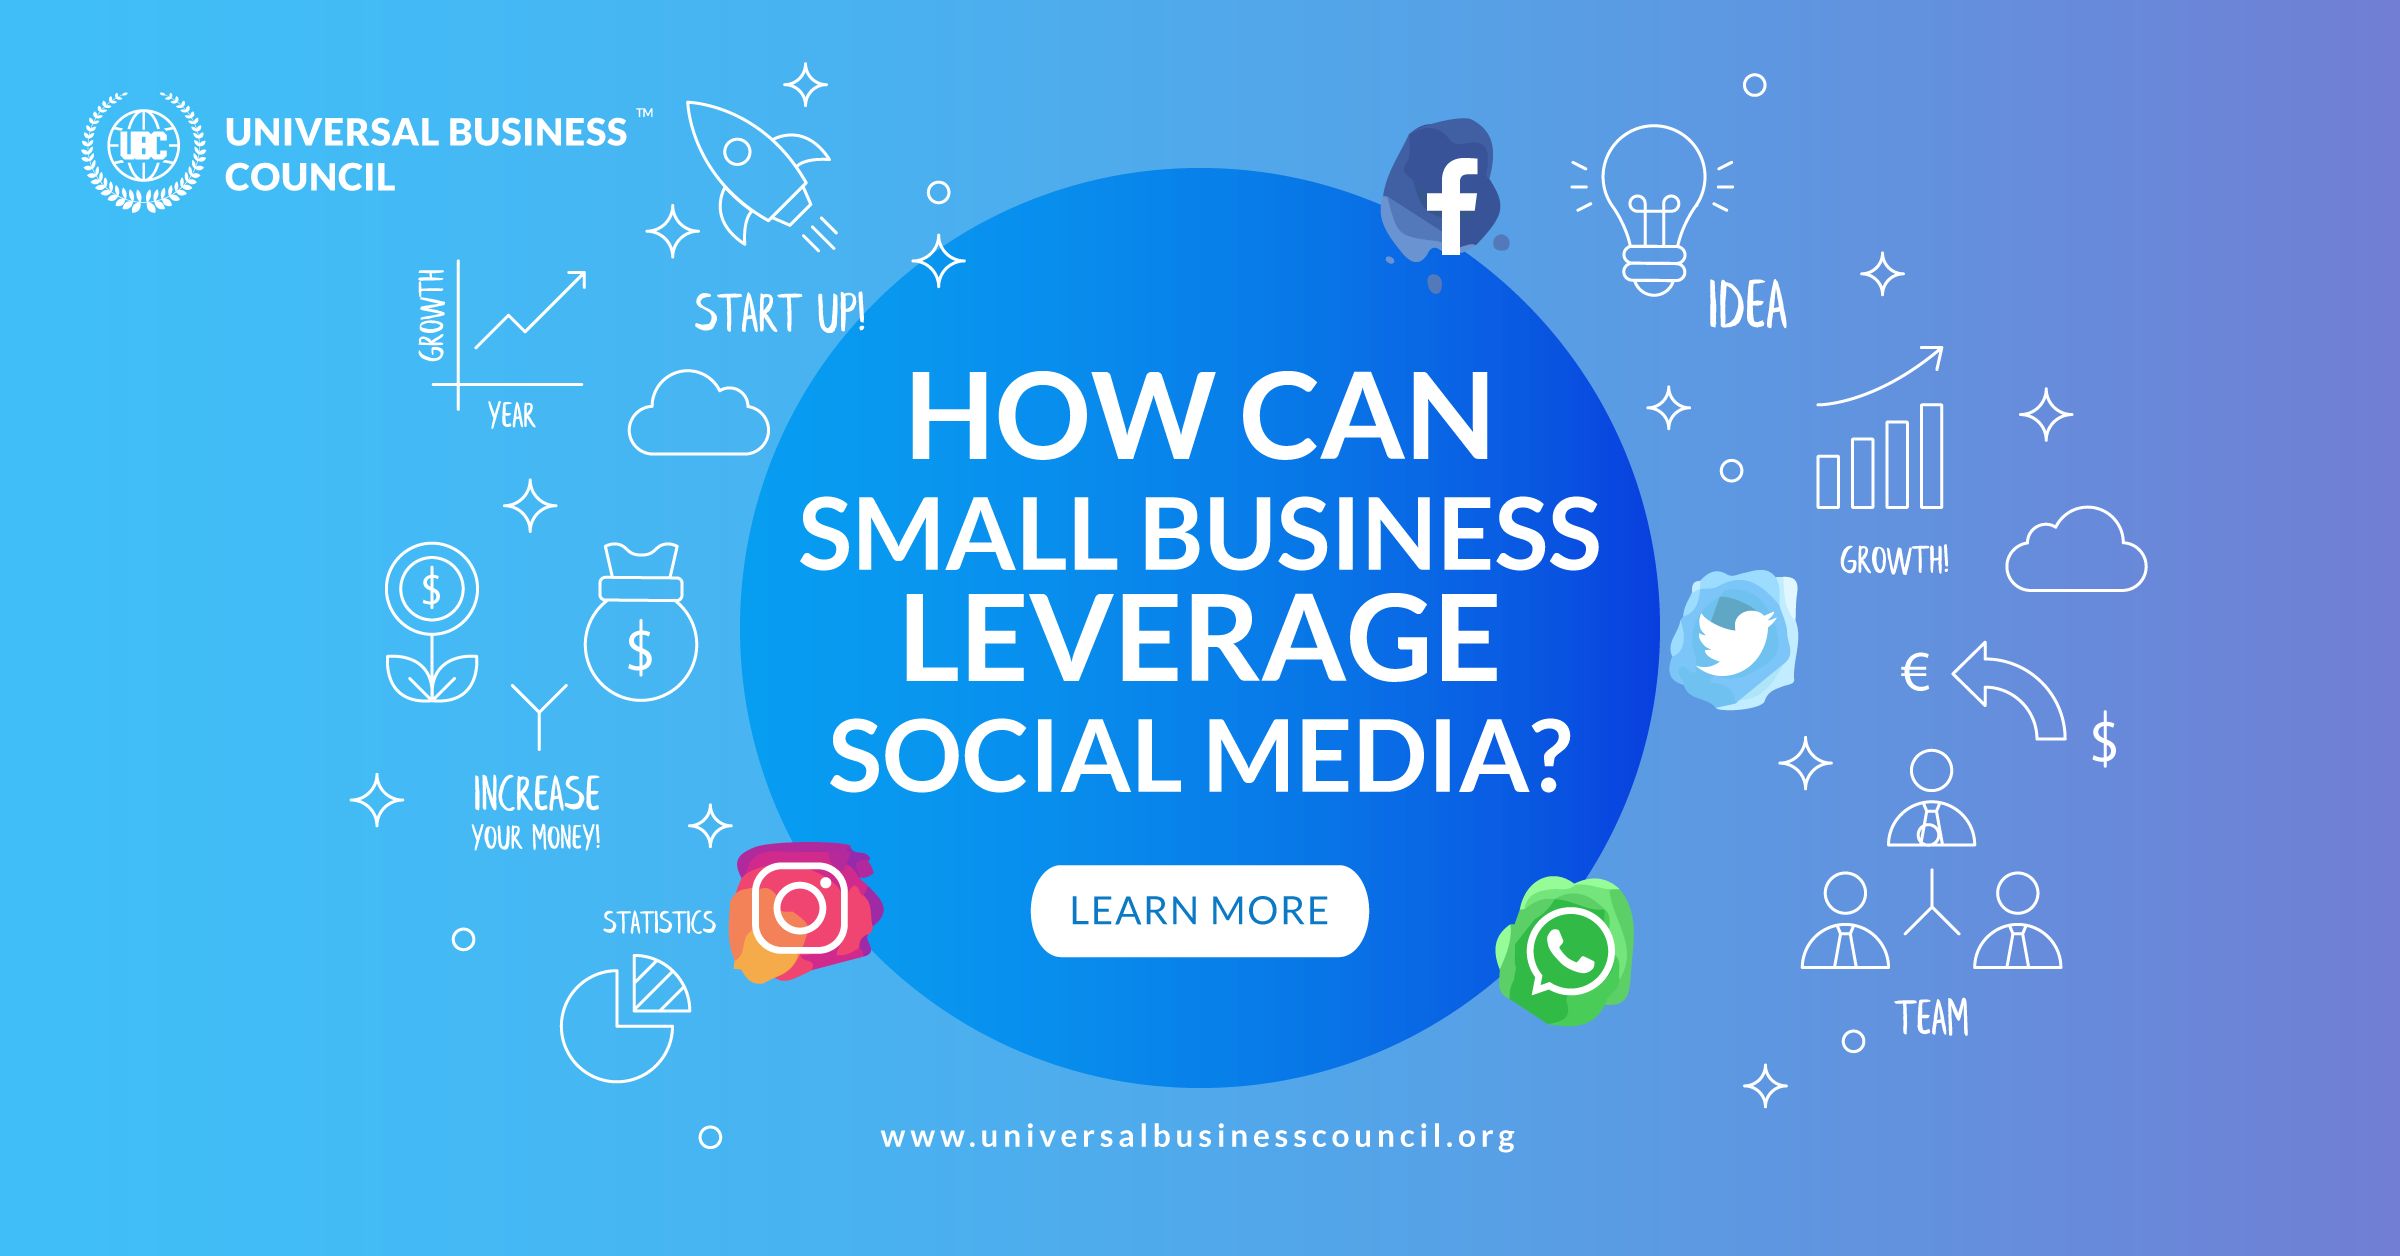 How-can-small-business-leverage-social-media